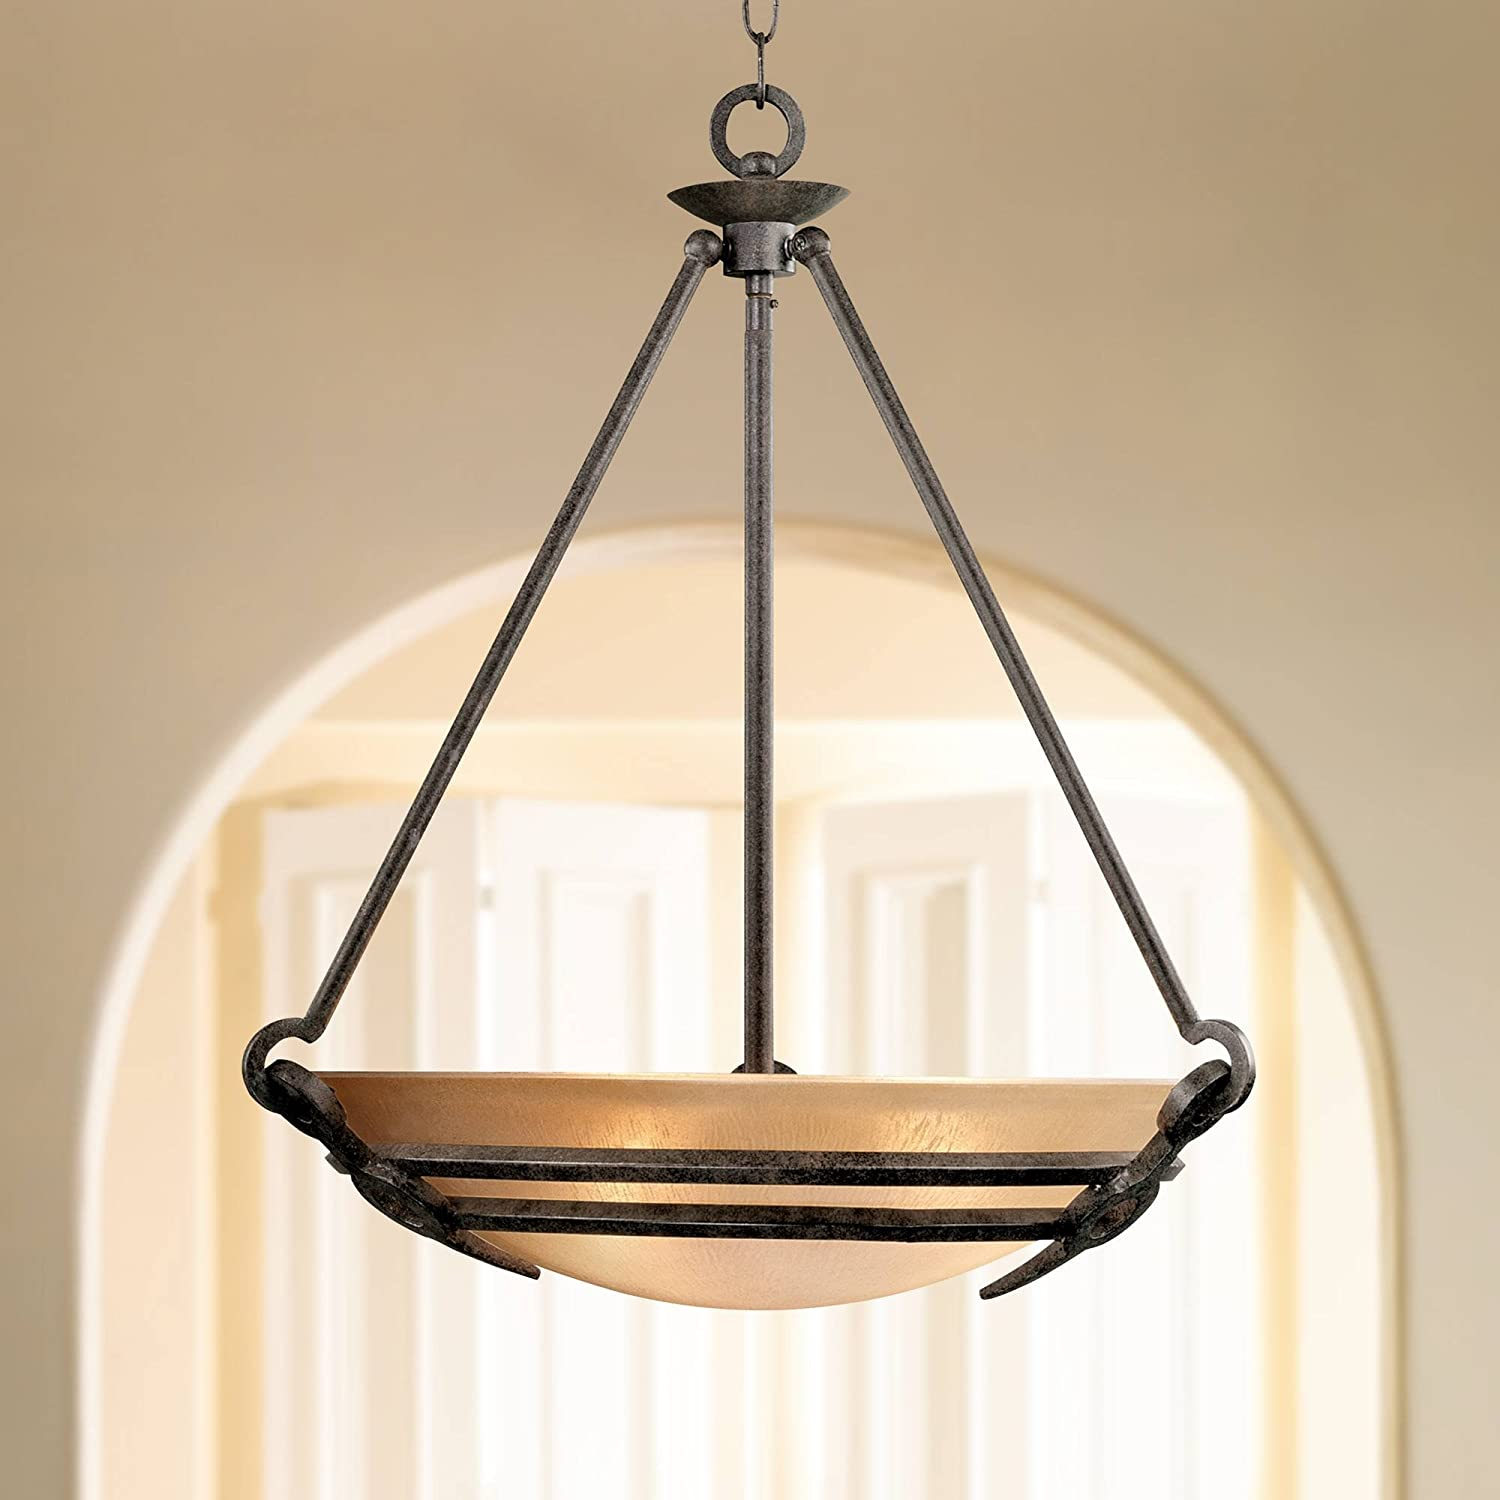 California Old Bronze Bowl Pendant Chandelier 22 1 2 Wide Industrial Mission India Scavo Glass For Dining Room House Foyer Entryway Kitchen Bedroom Living Room High Ceilings Franklin Iron Works Lighting